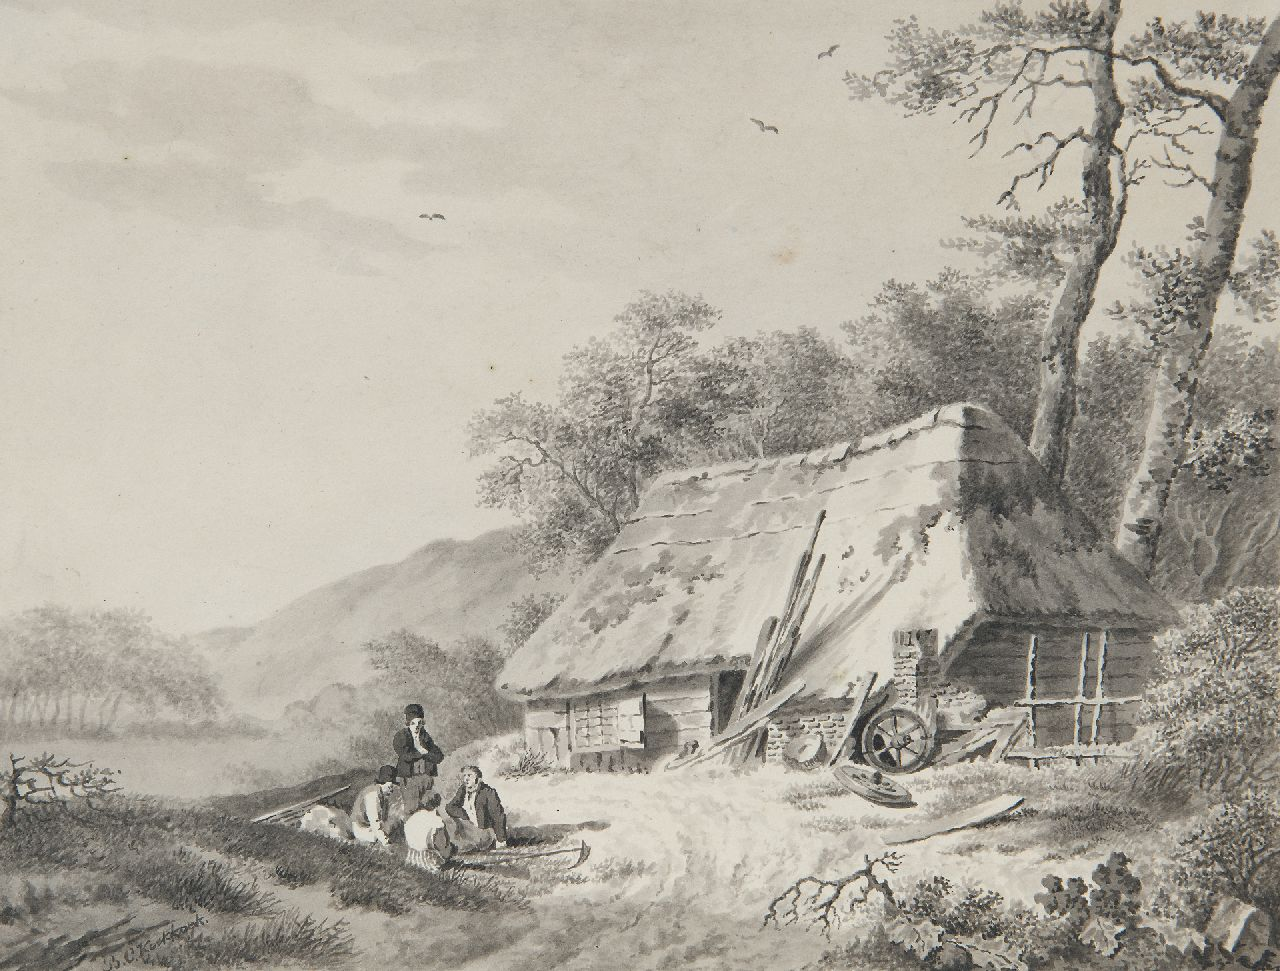 Koekkoek B.C.  | Barend Cornelis Koekkoek | Watercolours and other works on paper offered for sale | Figures near a farmhouse, drawing on paper